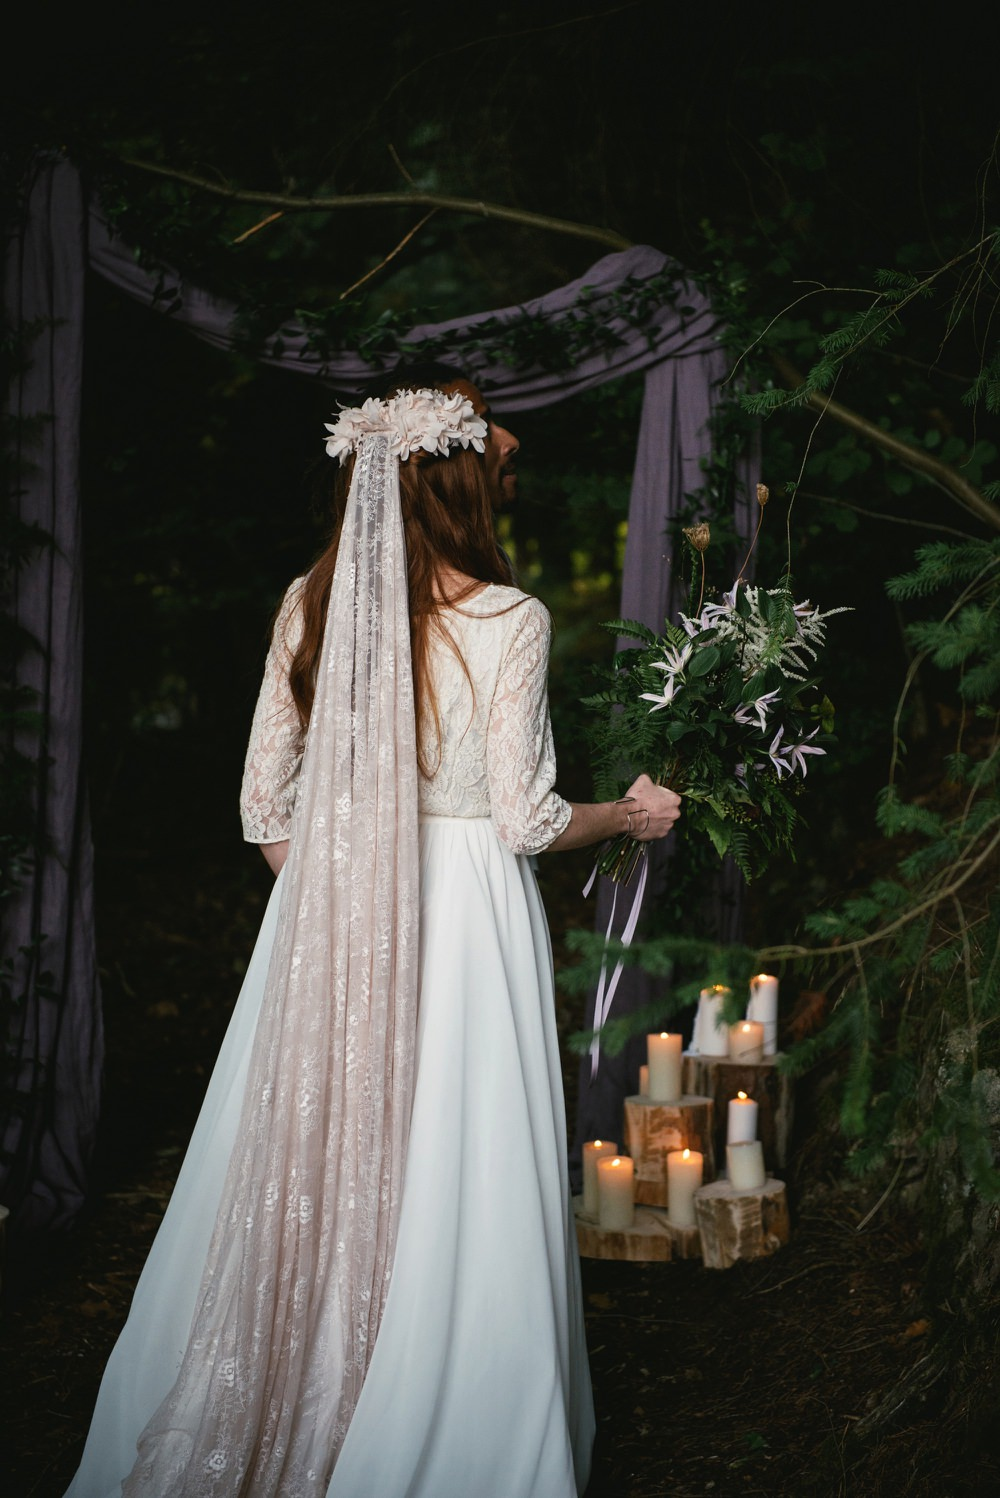 zephyr-luna-elopement-woods-france (14).jpg